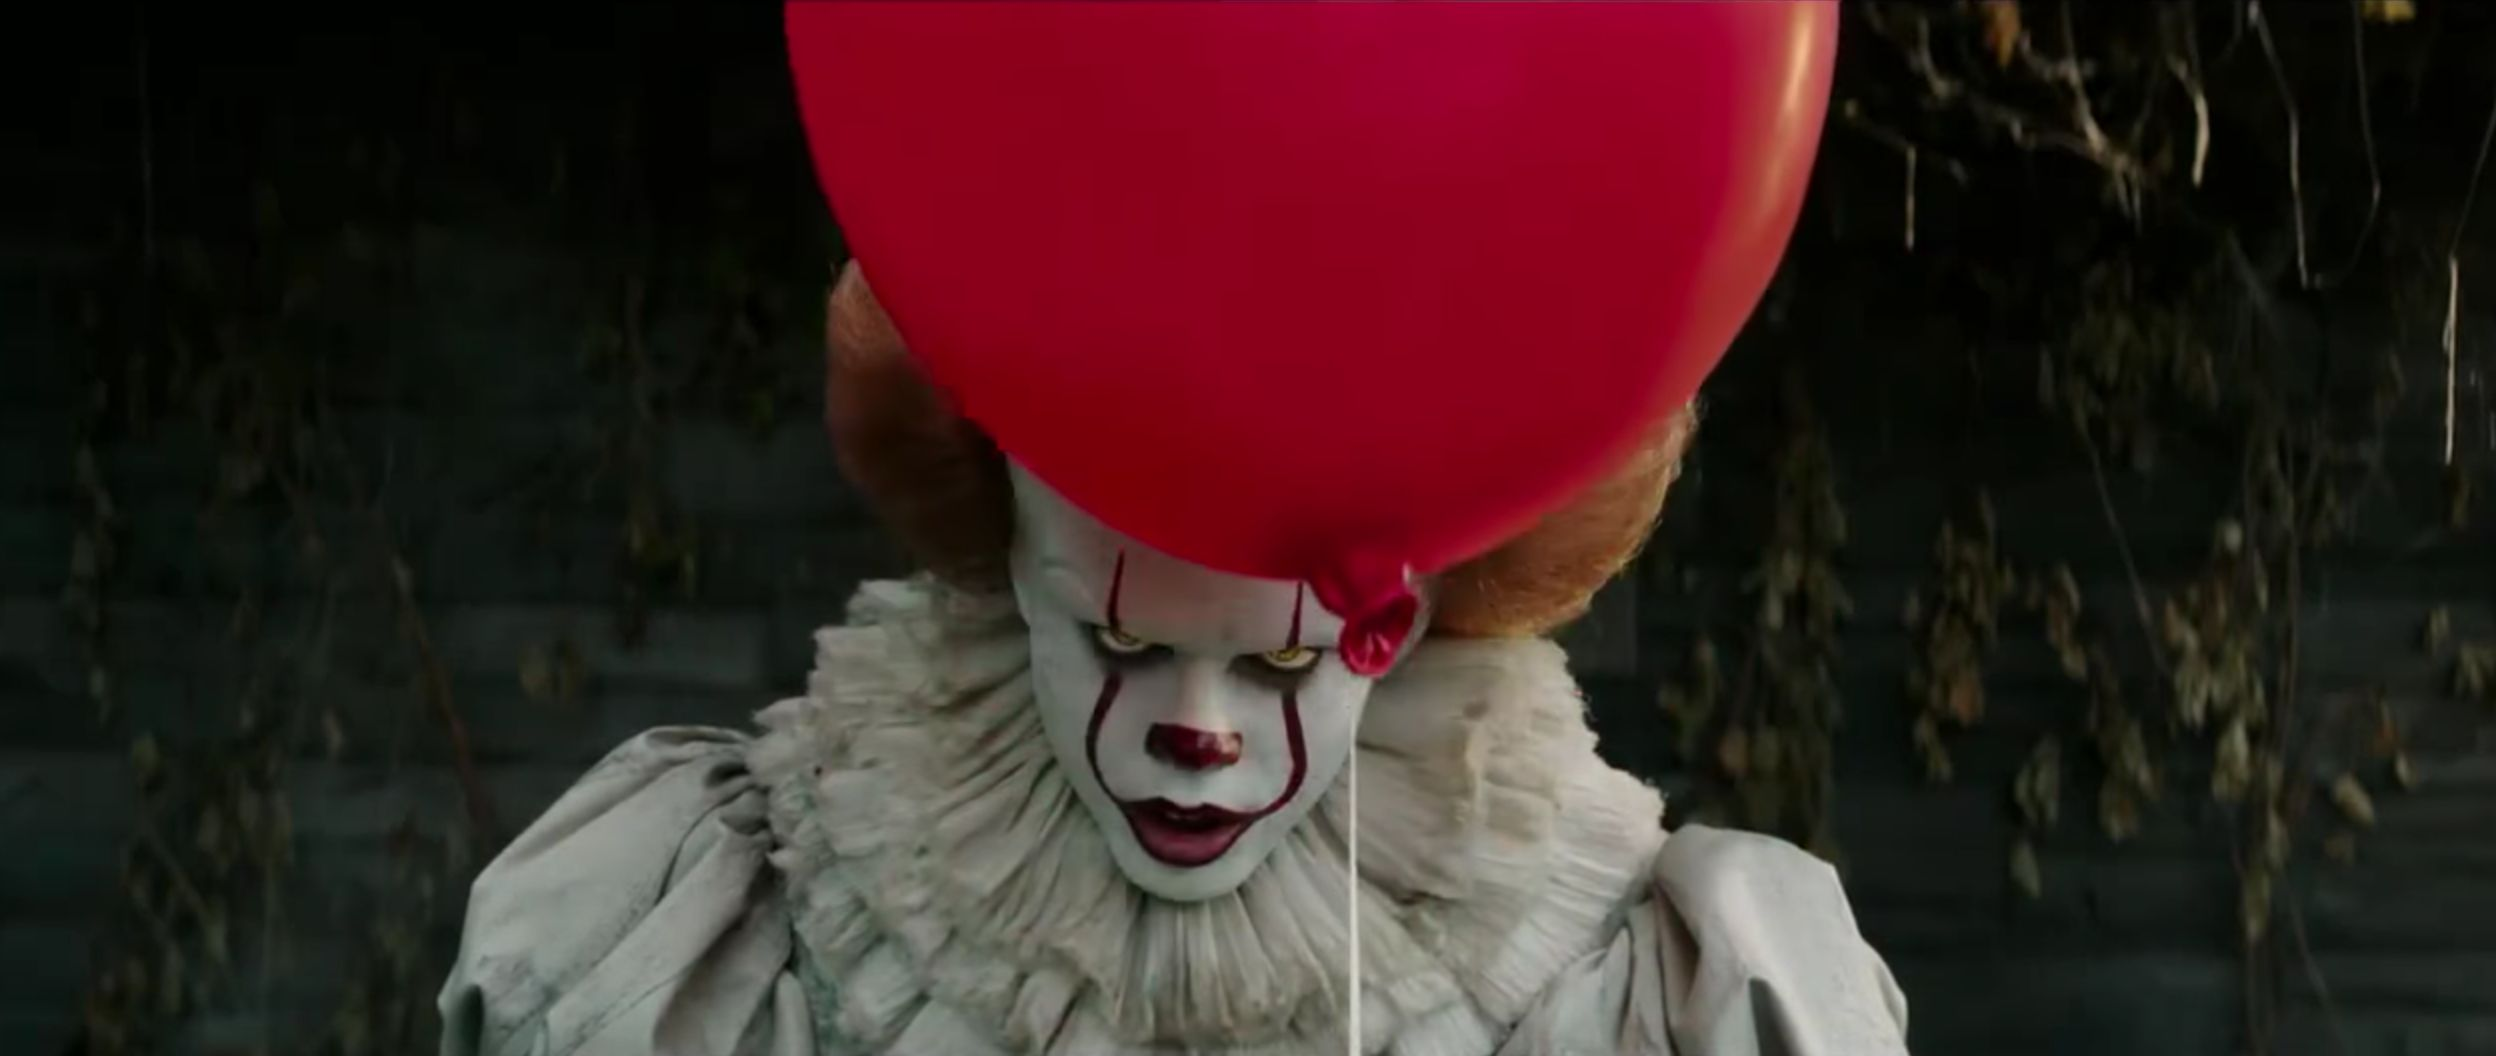 Some people can't waitto see Pennywise the clown in